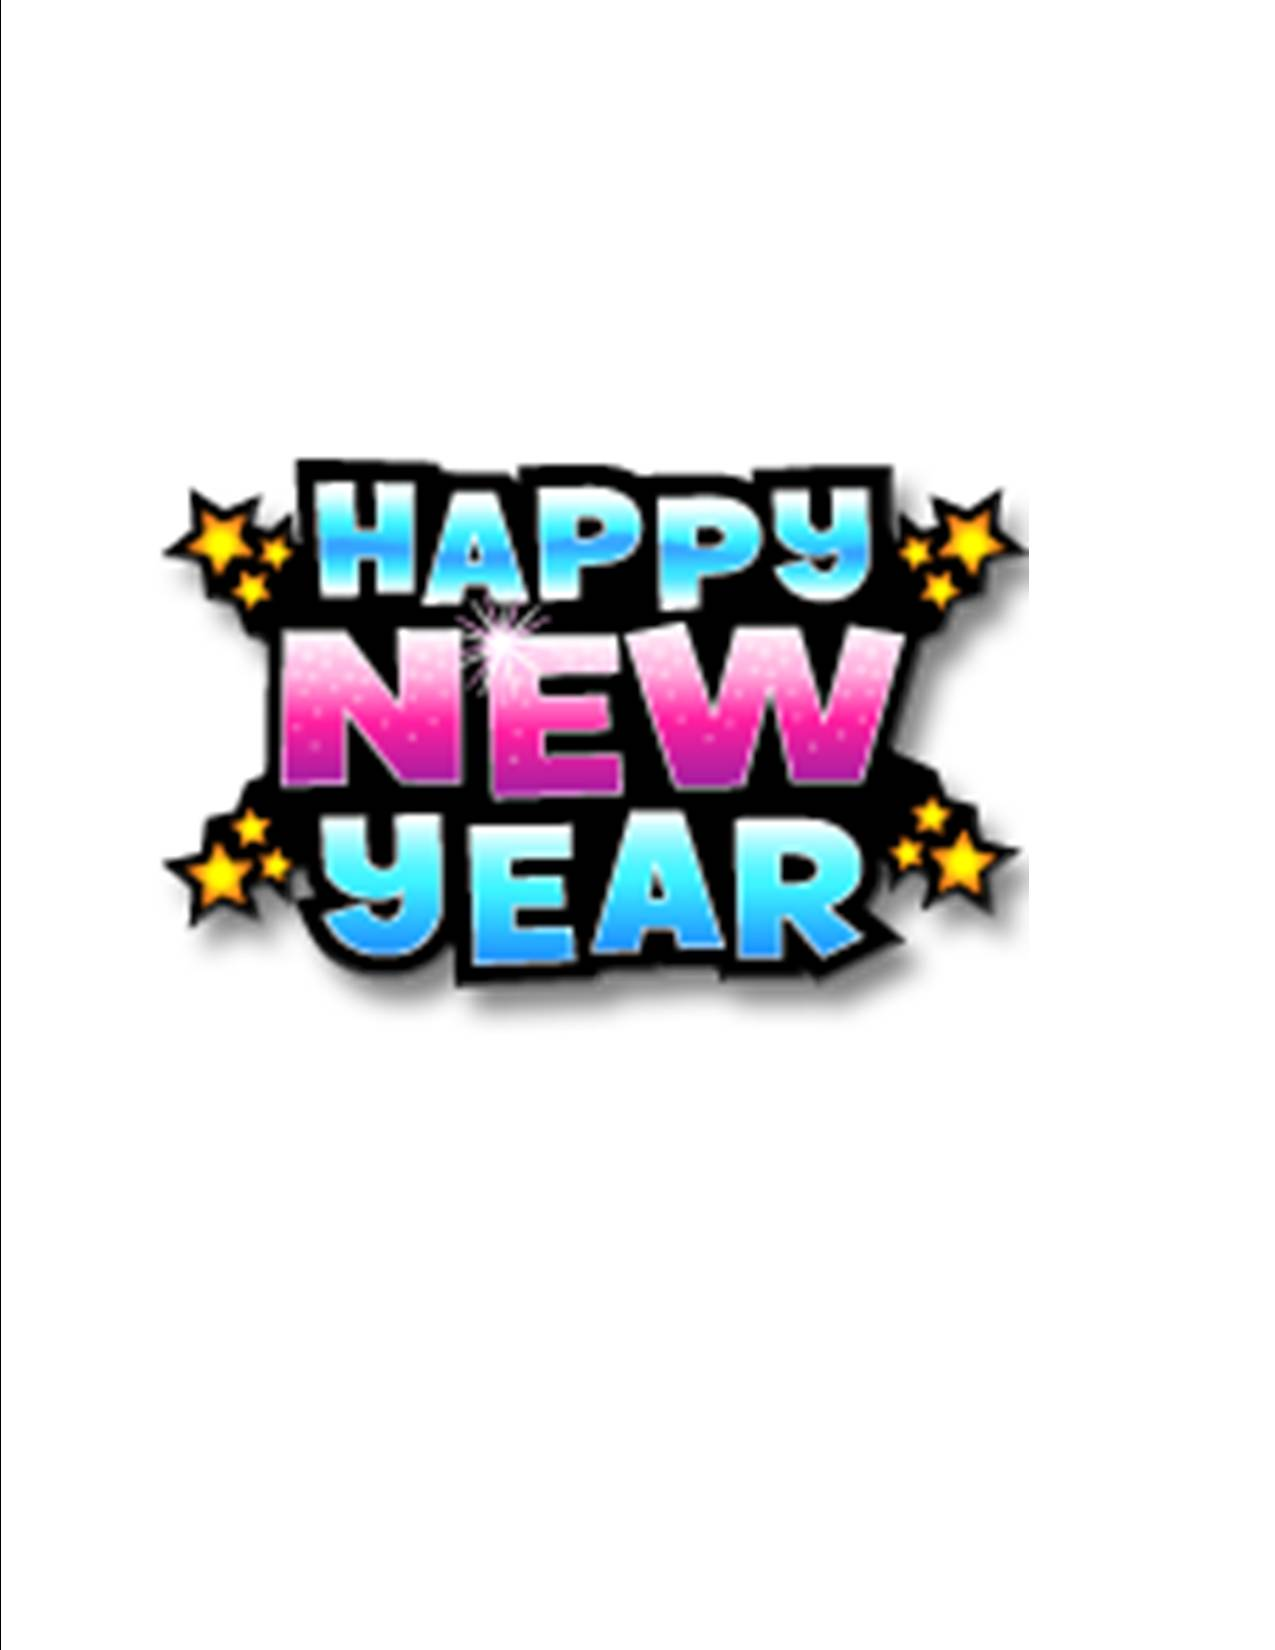 Happy new year clip art wallpapers 3   ClipartBarn 1275x1650